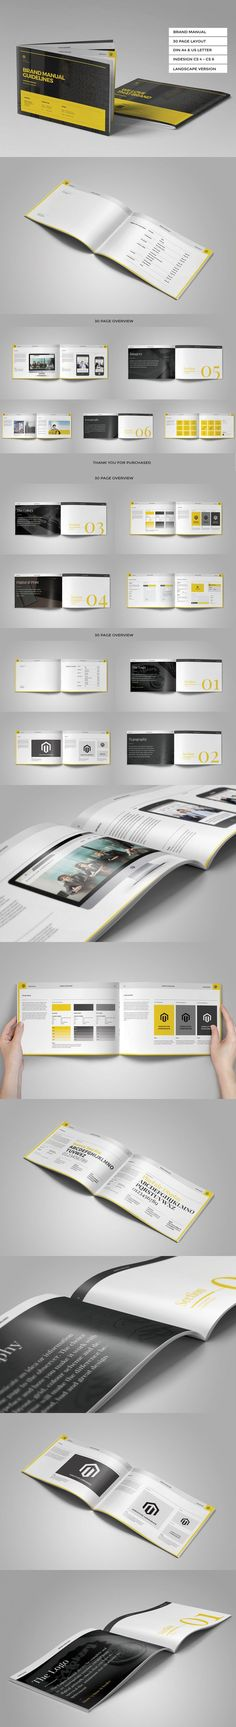 Brand Manual Template InDesign INDD #design Download   - how to manual template